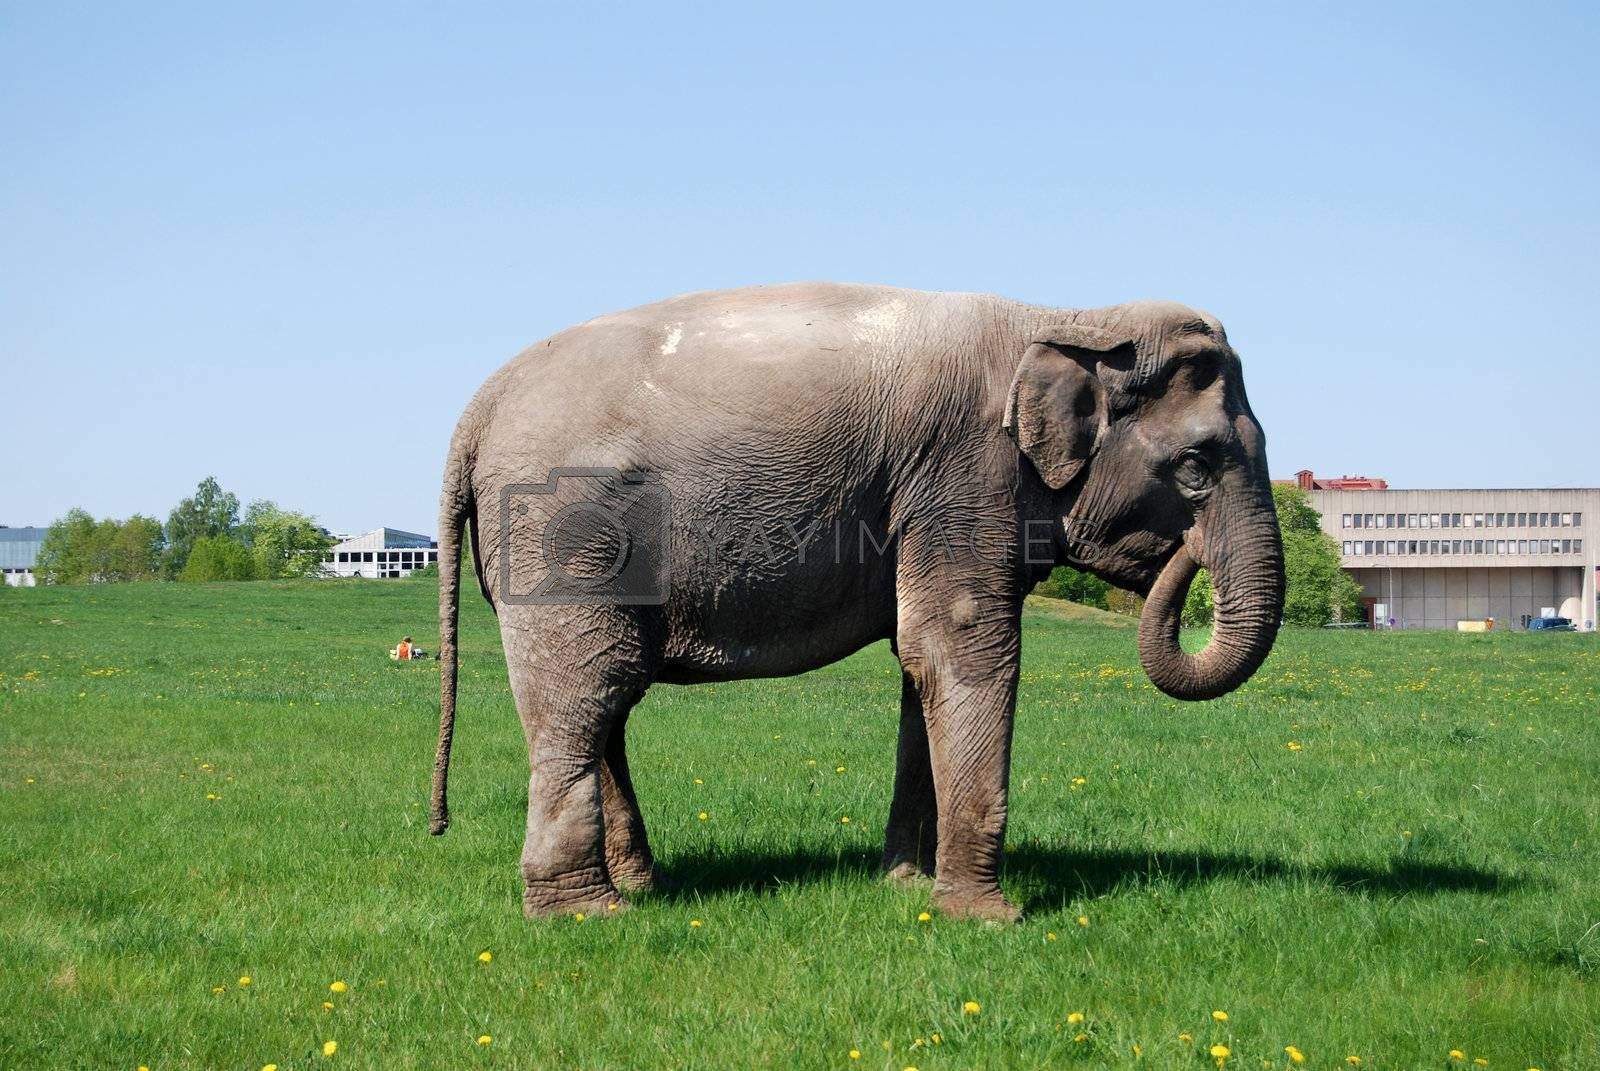 Elefant eating grass at central Stockholm city park in may 2008. Cirkus in town.